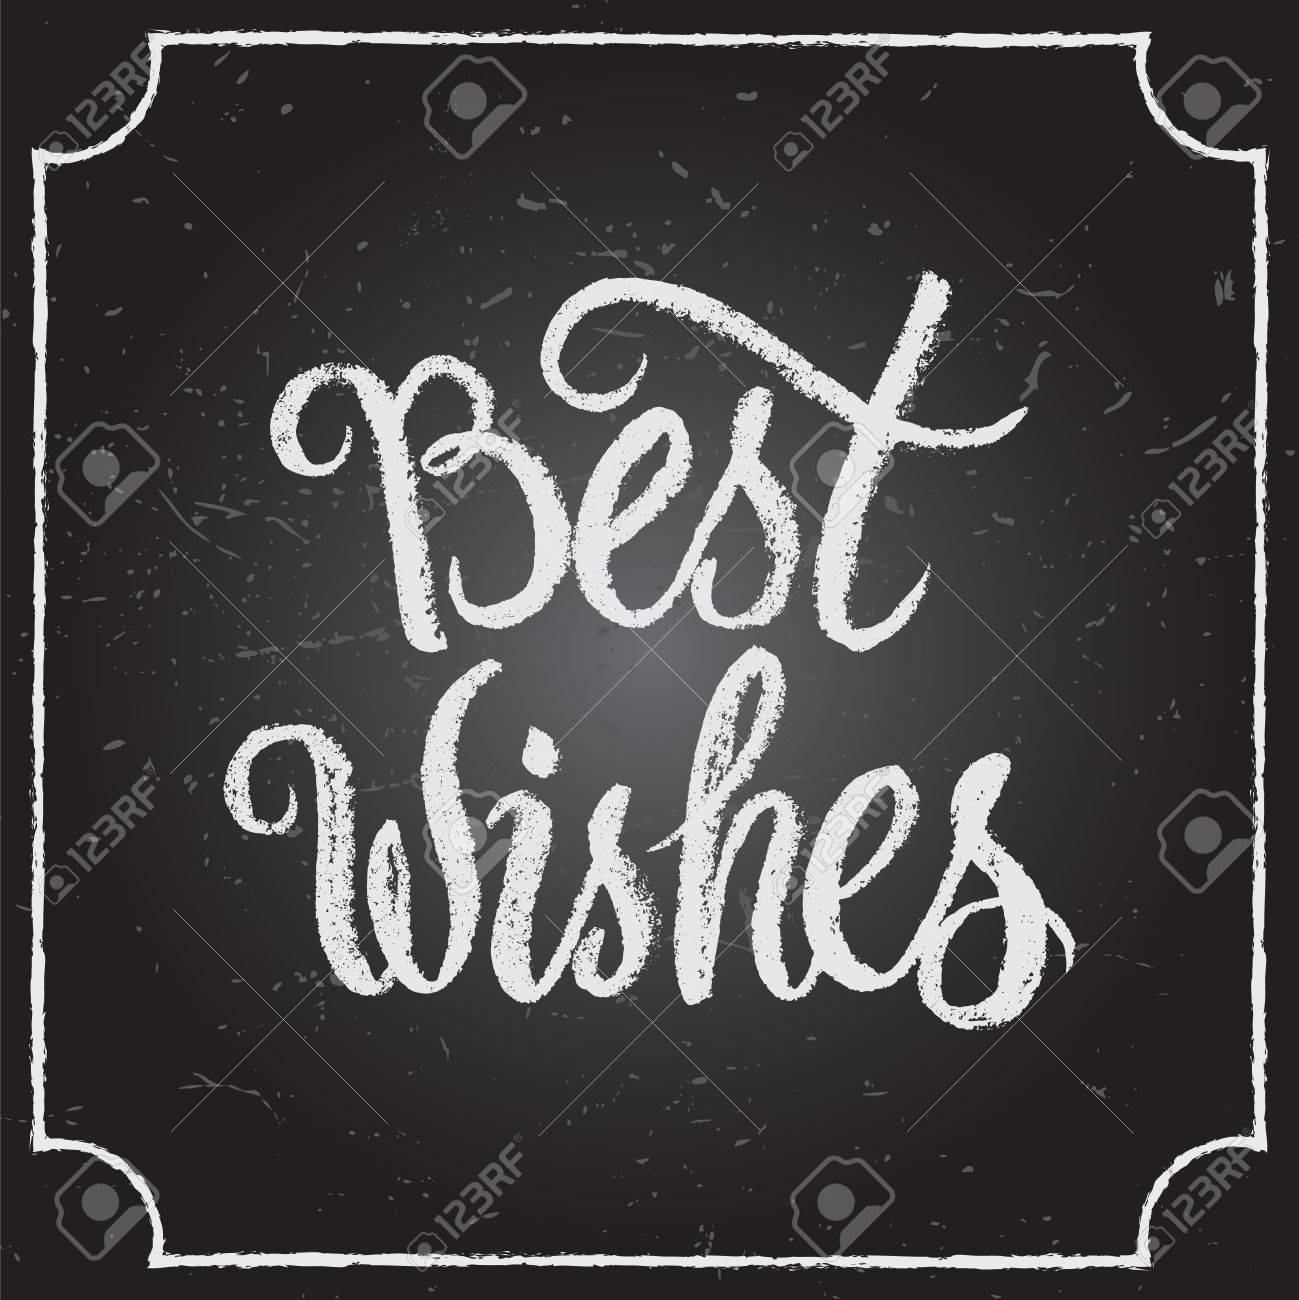 Best Wishes calligraphic and typographic background with chalk word art on blackboard. - 48557134